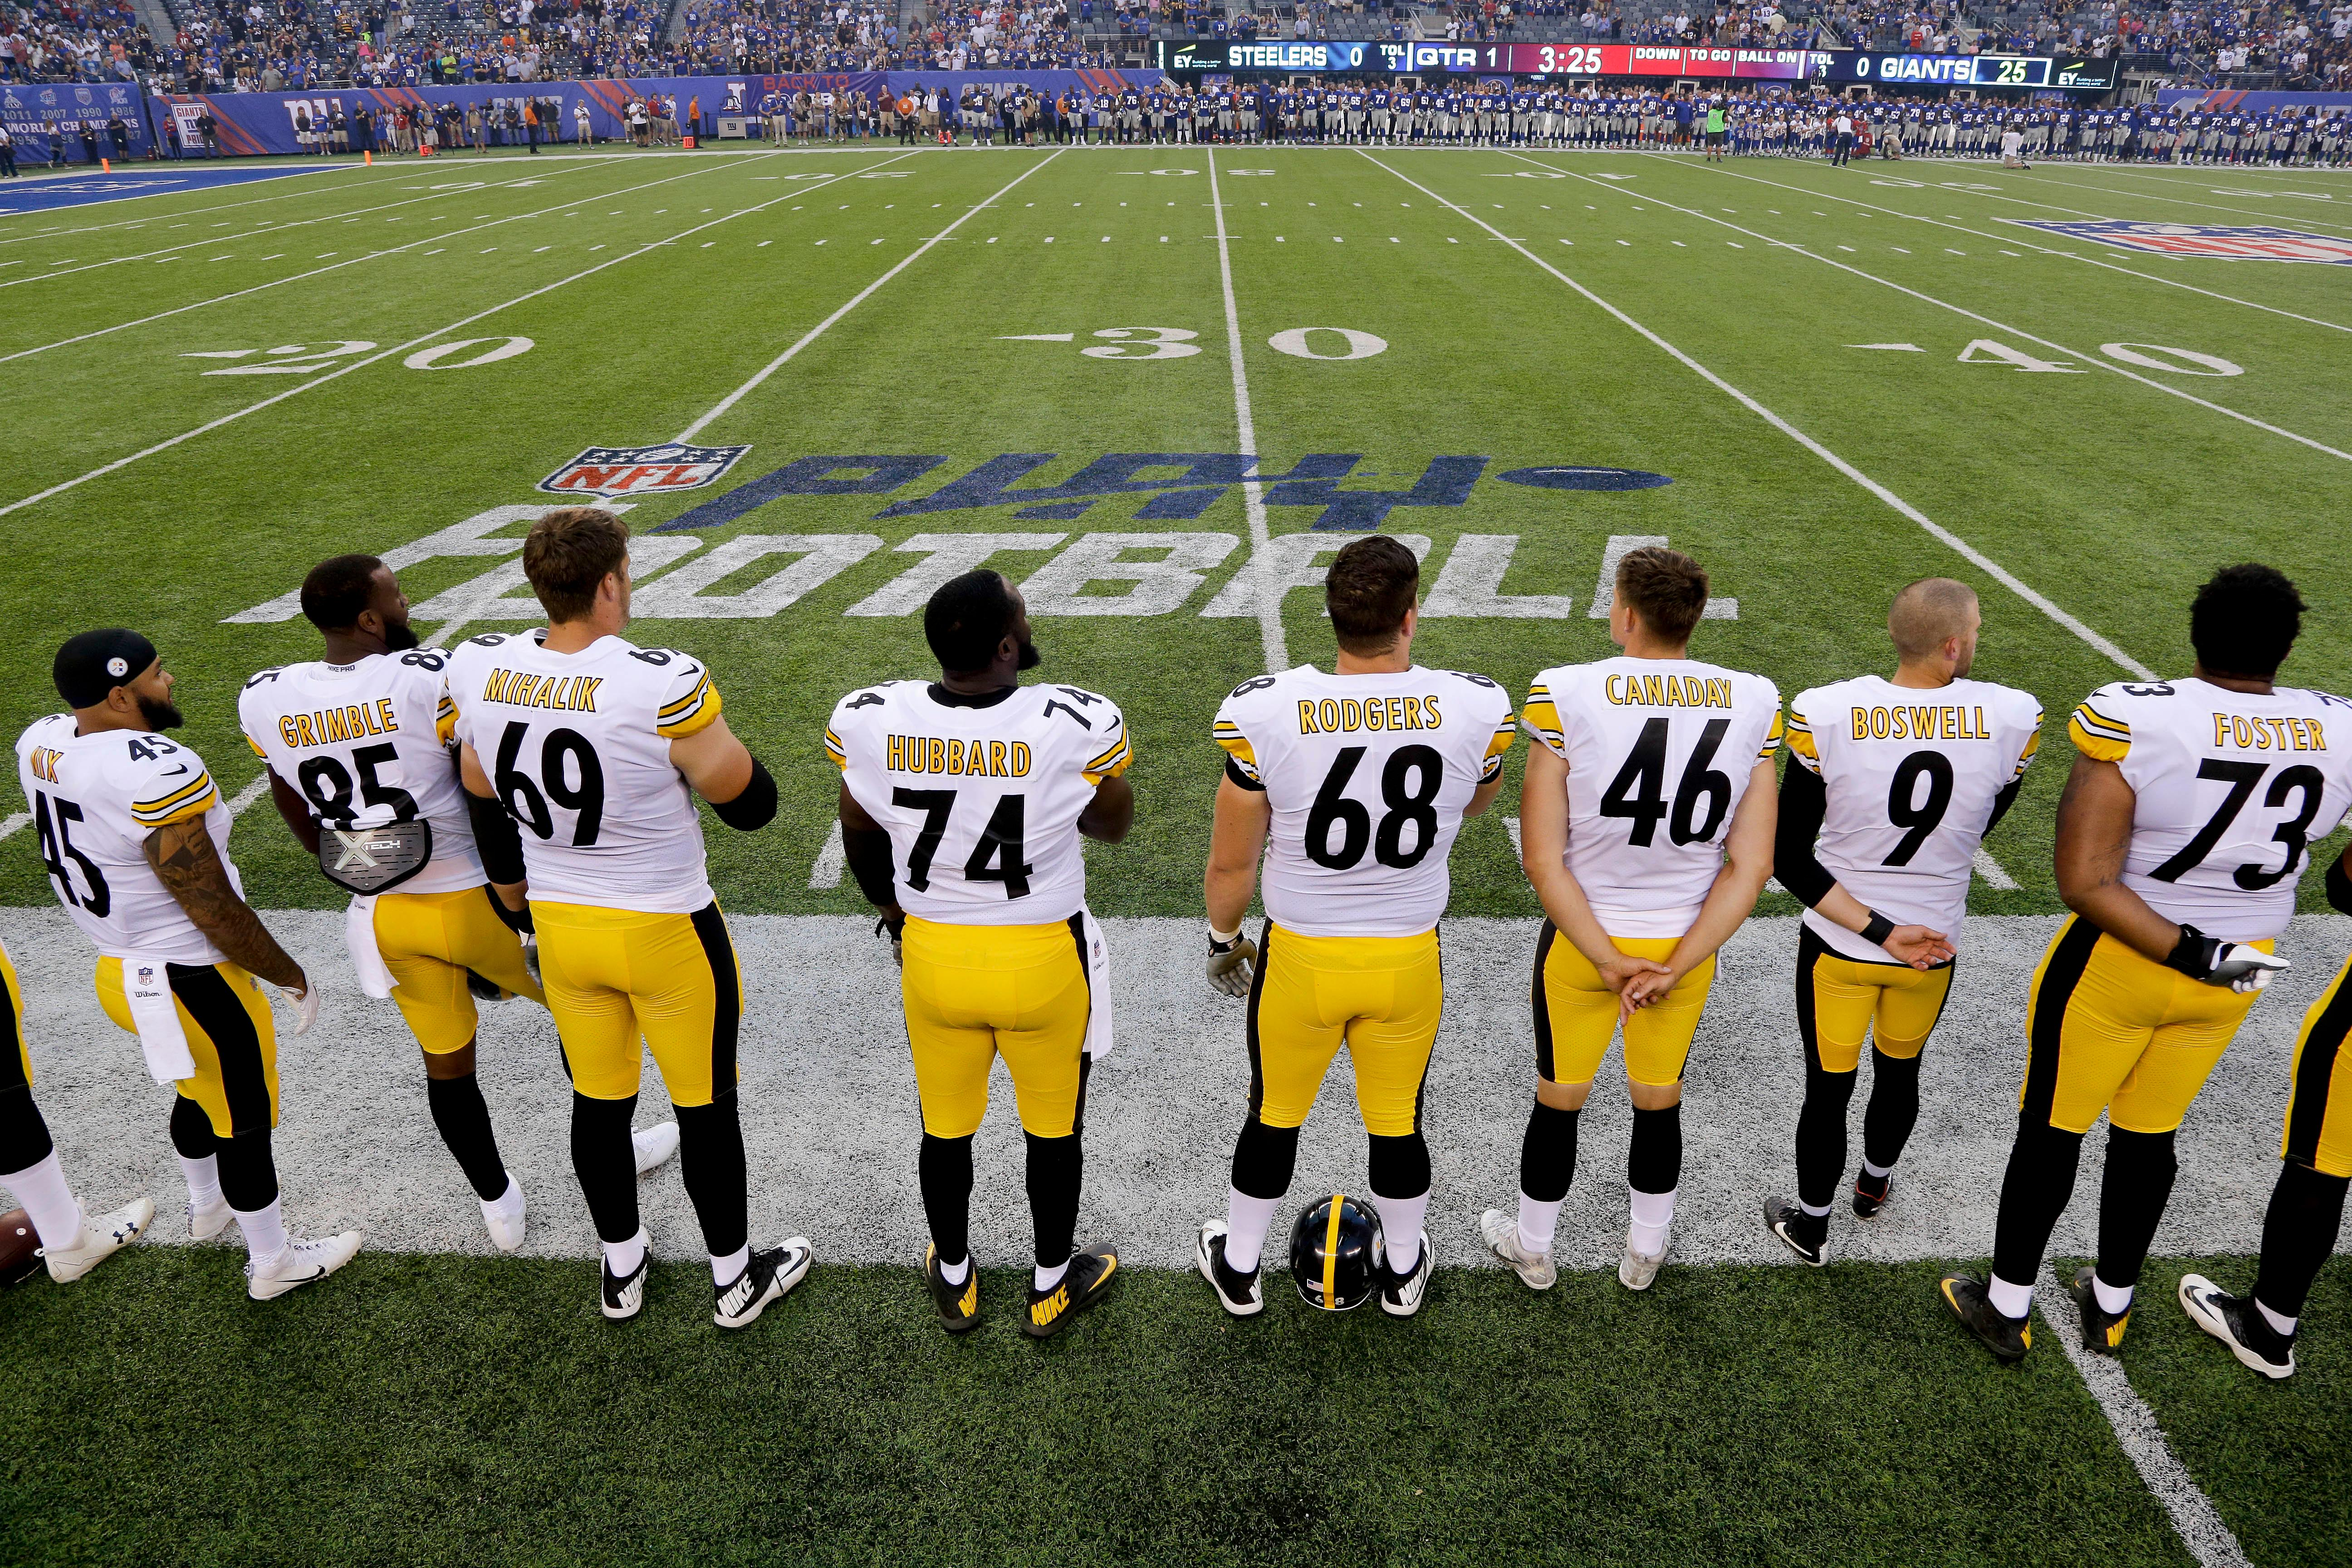 The Pittsburgh Steelers line up for the national anthem before playing against the New York Giants in an NFL football game, Friday, Aug. 11, 2017, in East Rutherford, N.J. (AP Photo/Julio Cortez)